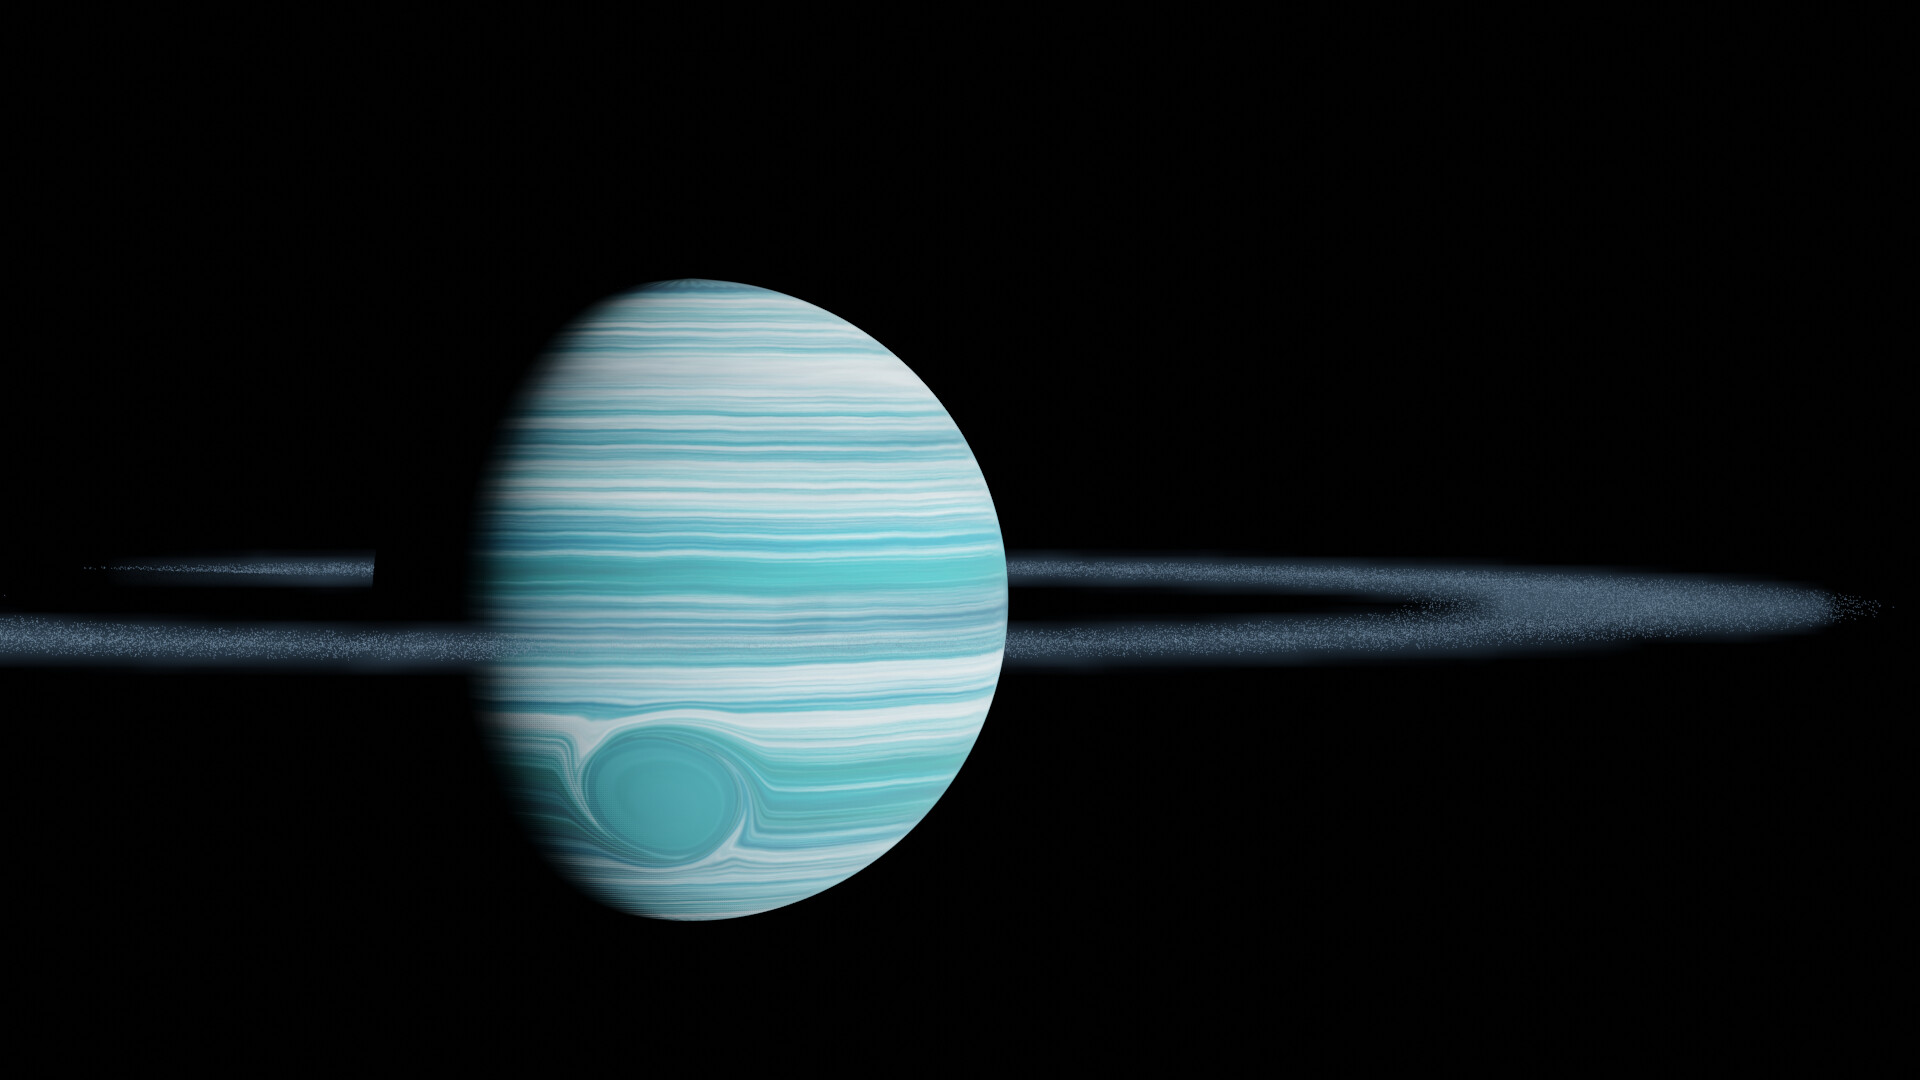 Shinseiko kuromatsu awesome gas giant roid rings 4 with volumetric dust